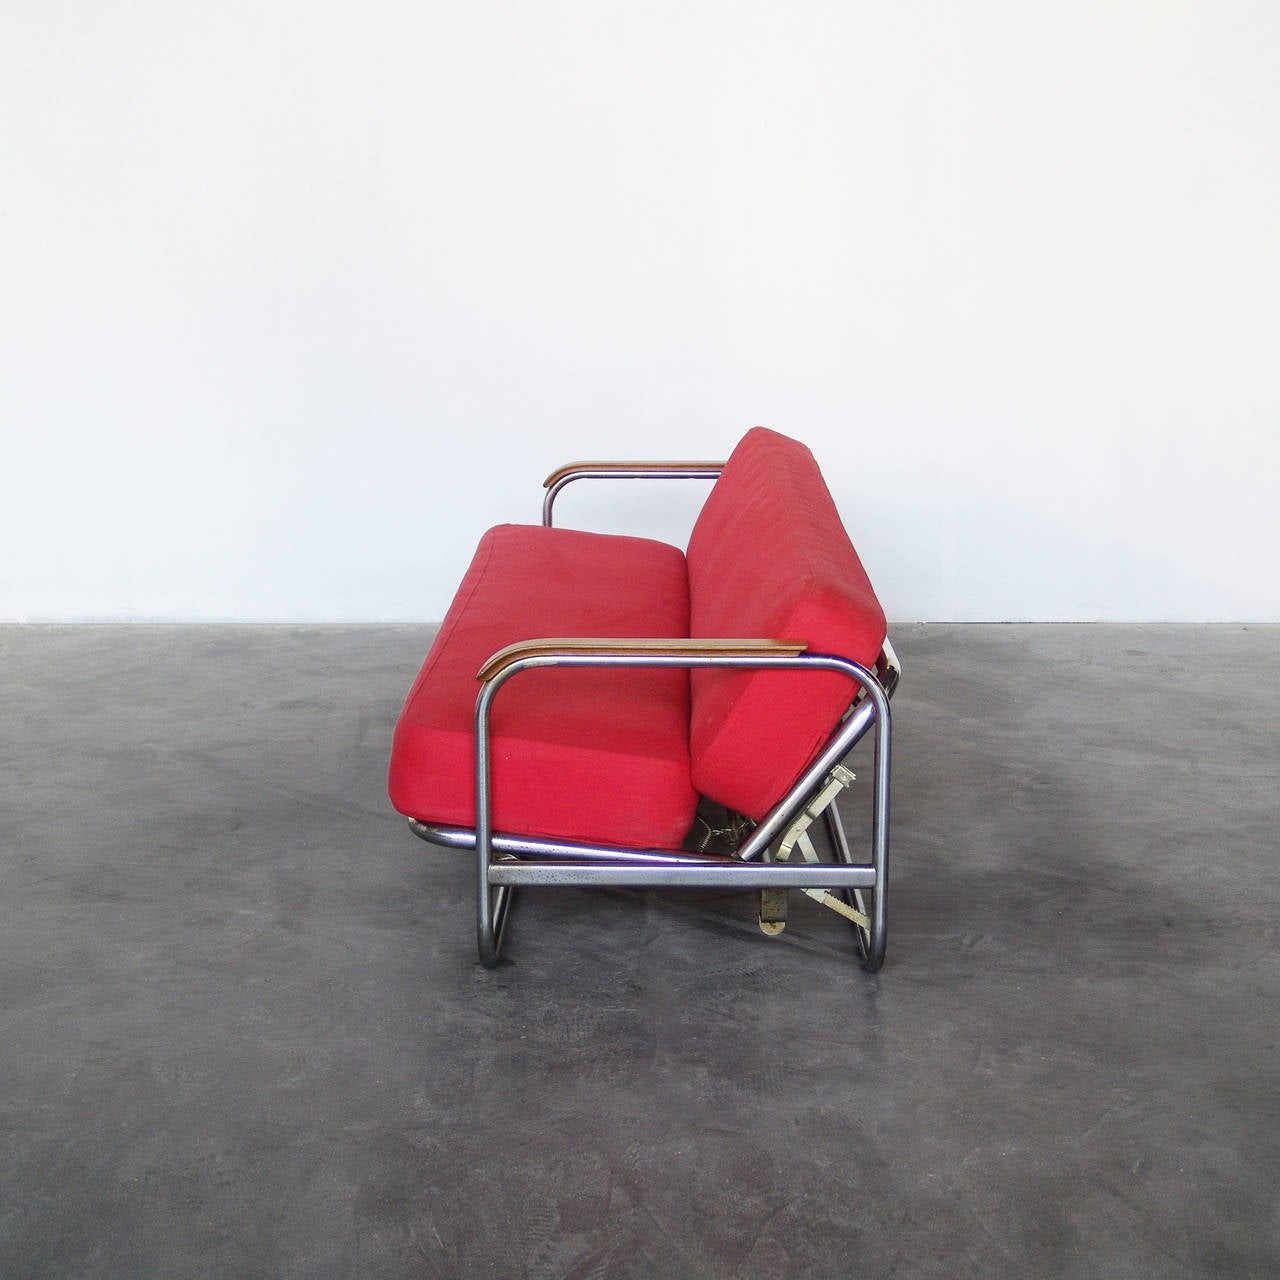 Sofa bed designed by alvar aalto 1939 at 1stdibs for Alvar aalto chaise longue